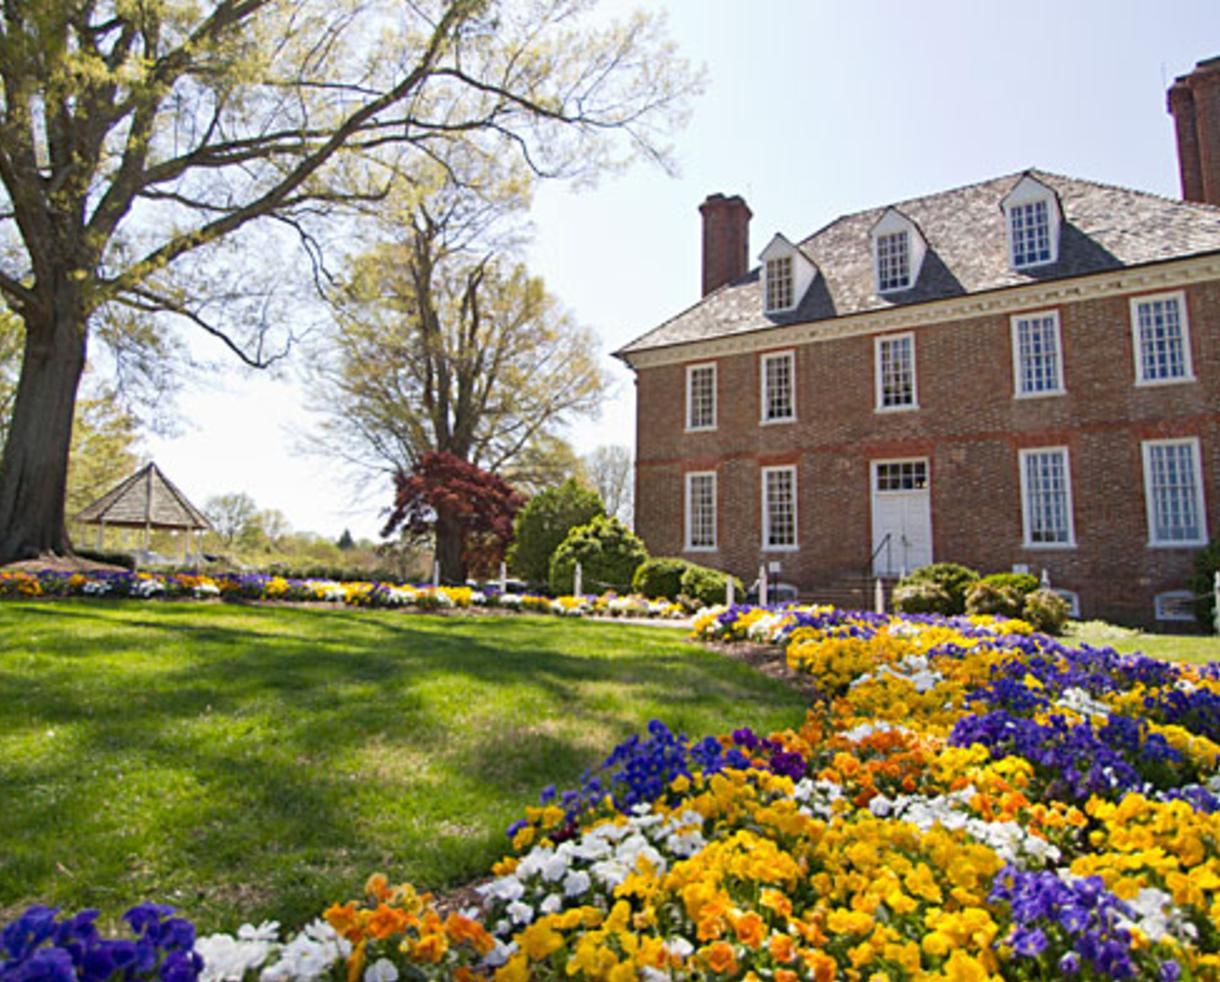 $297+ for 3-Night Getaway in a 2-Bedroom Condo at The Historic Powhatan Resort in Williamsburg, VA - Valid Through June! (Up to 65% Off)